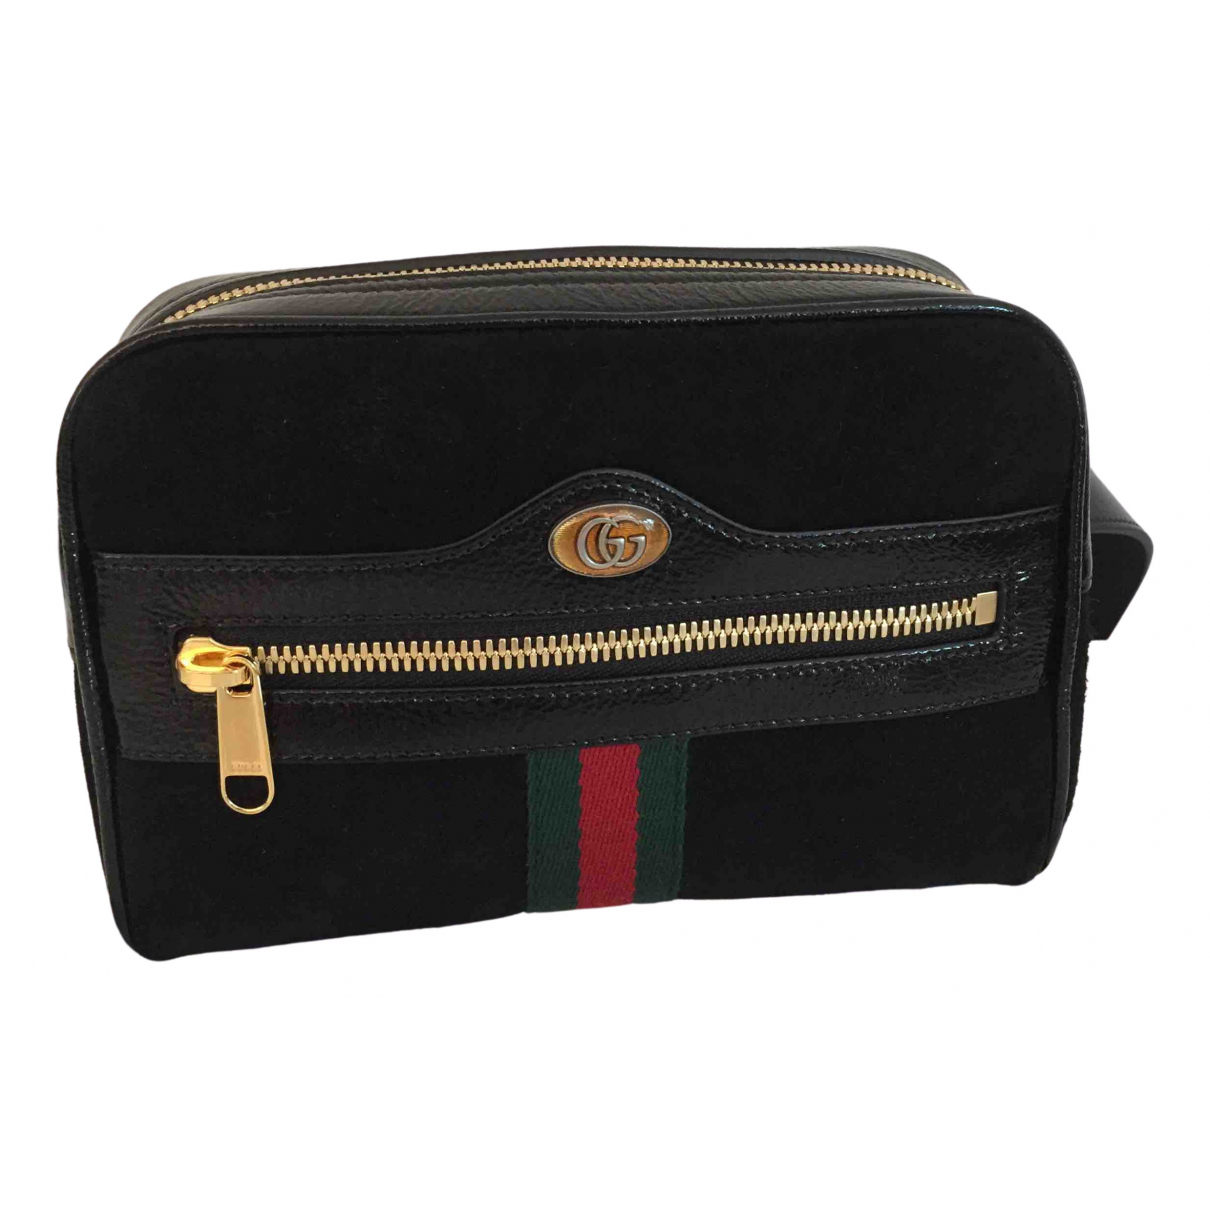 Gucci Ophidia Black Suede Clutch bag for Women \N